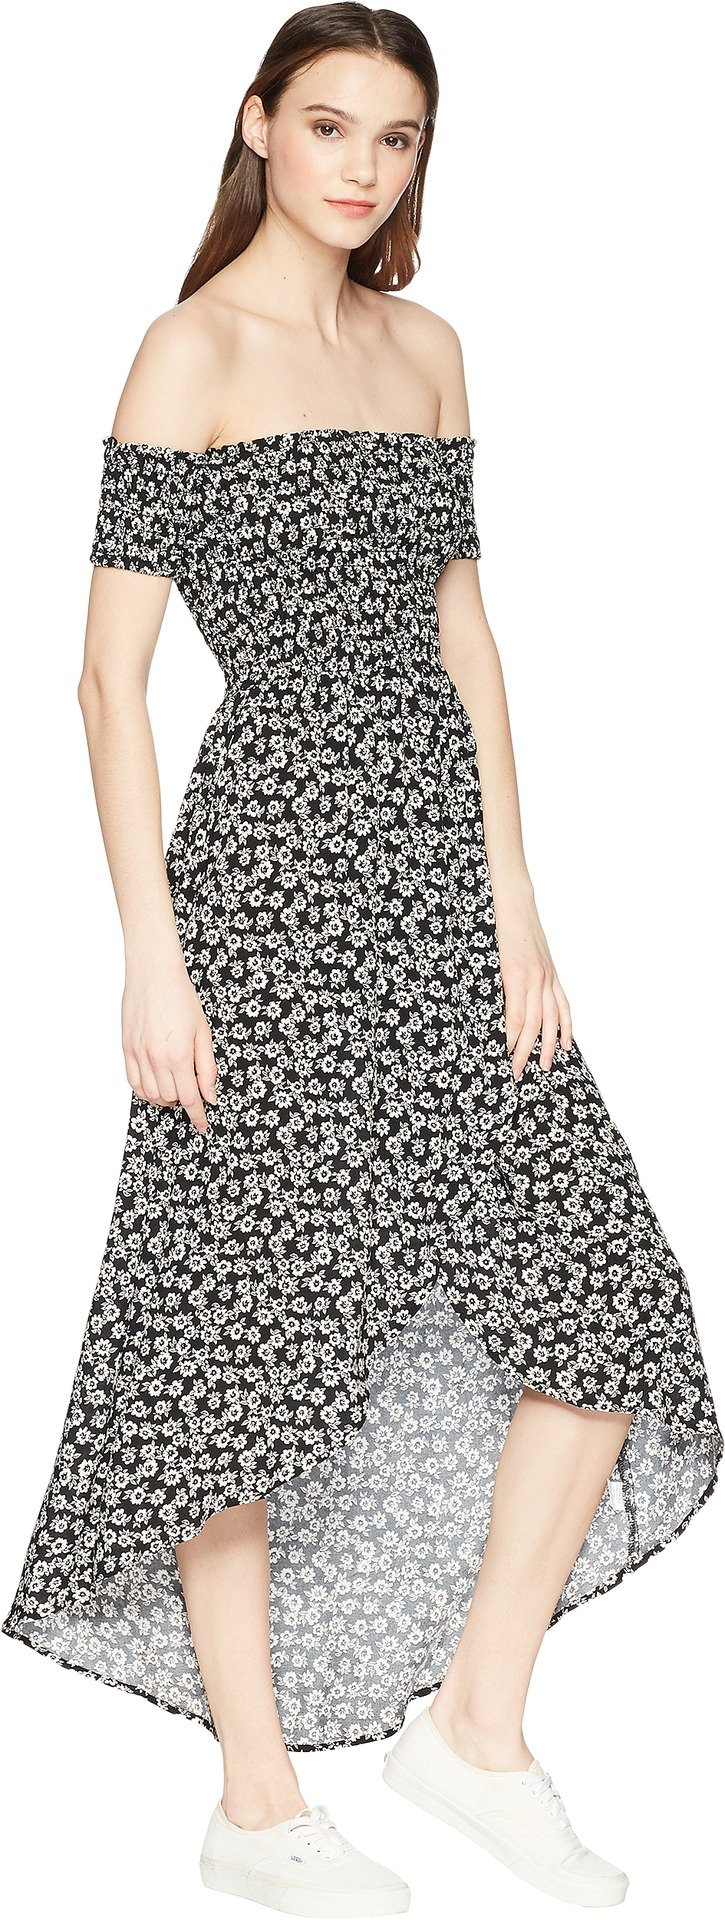 Lucy Love Women's Tranquility Dress Black X-Small